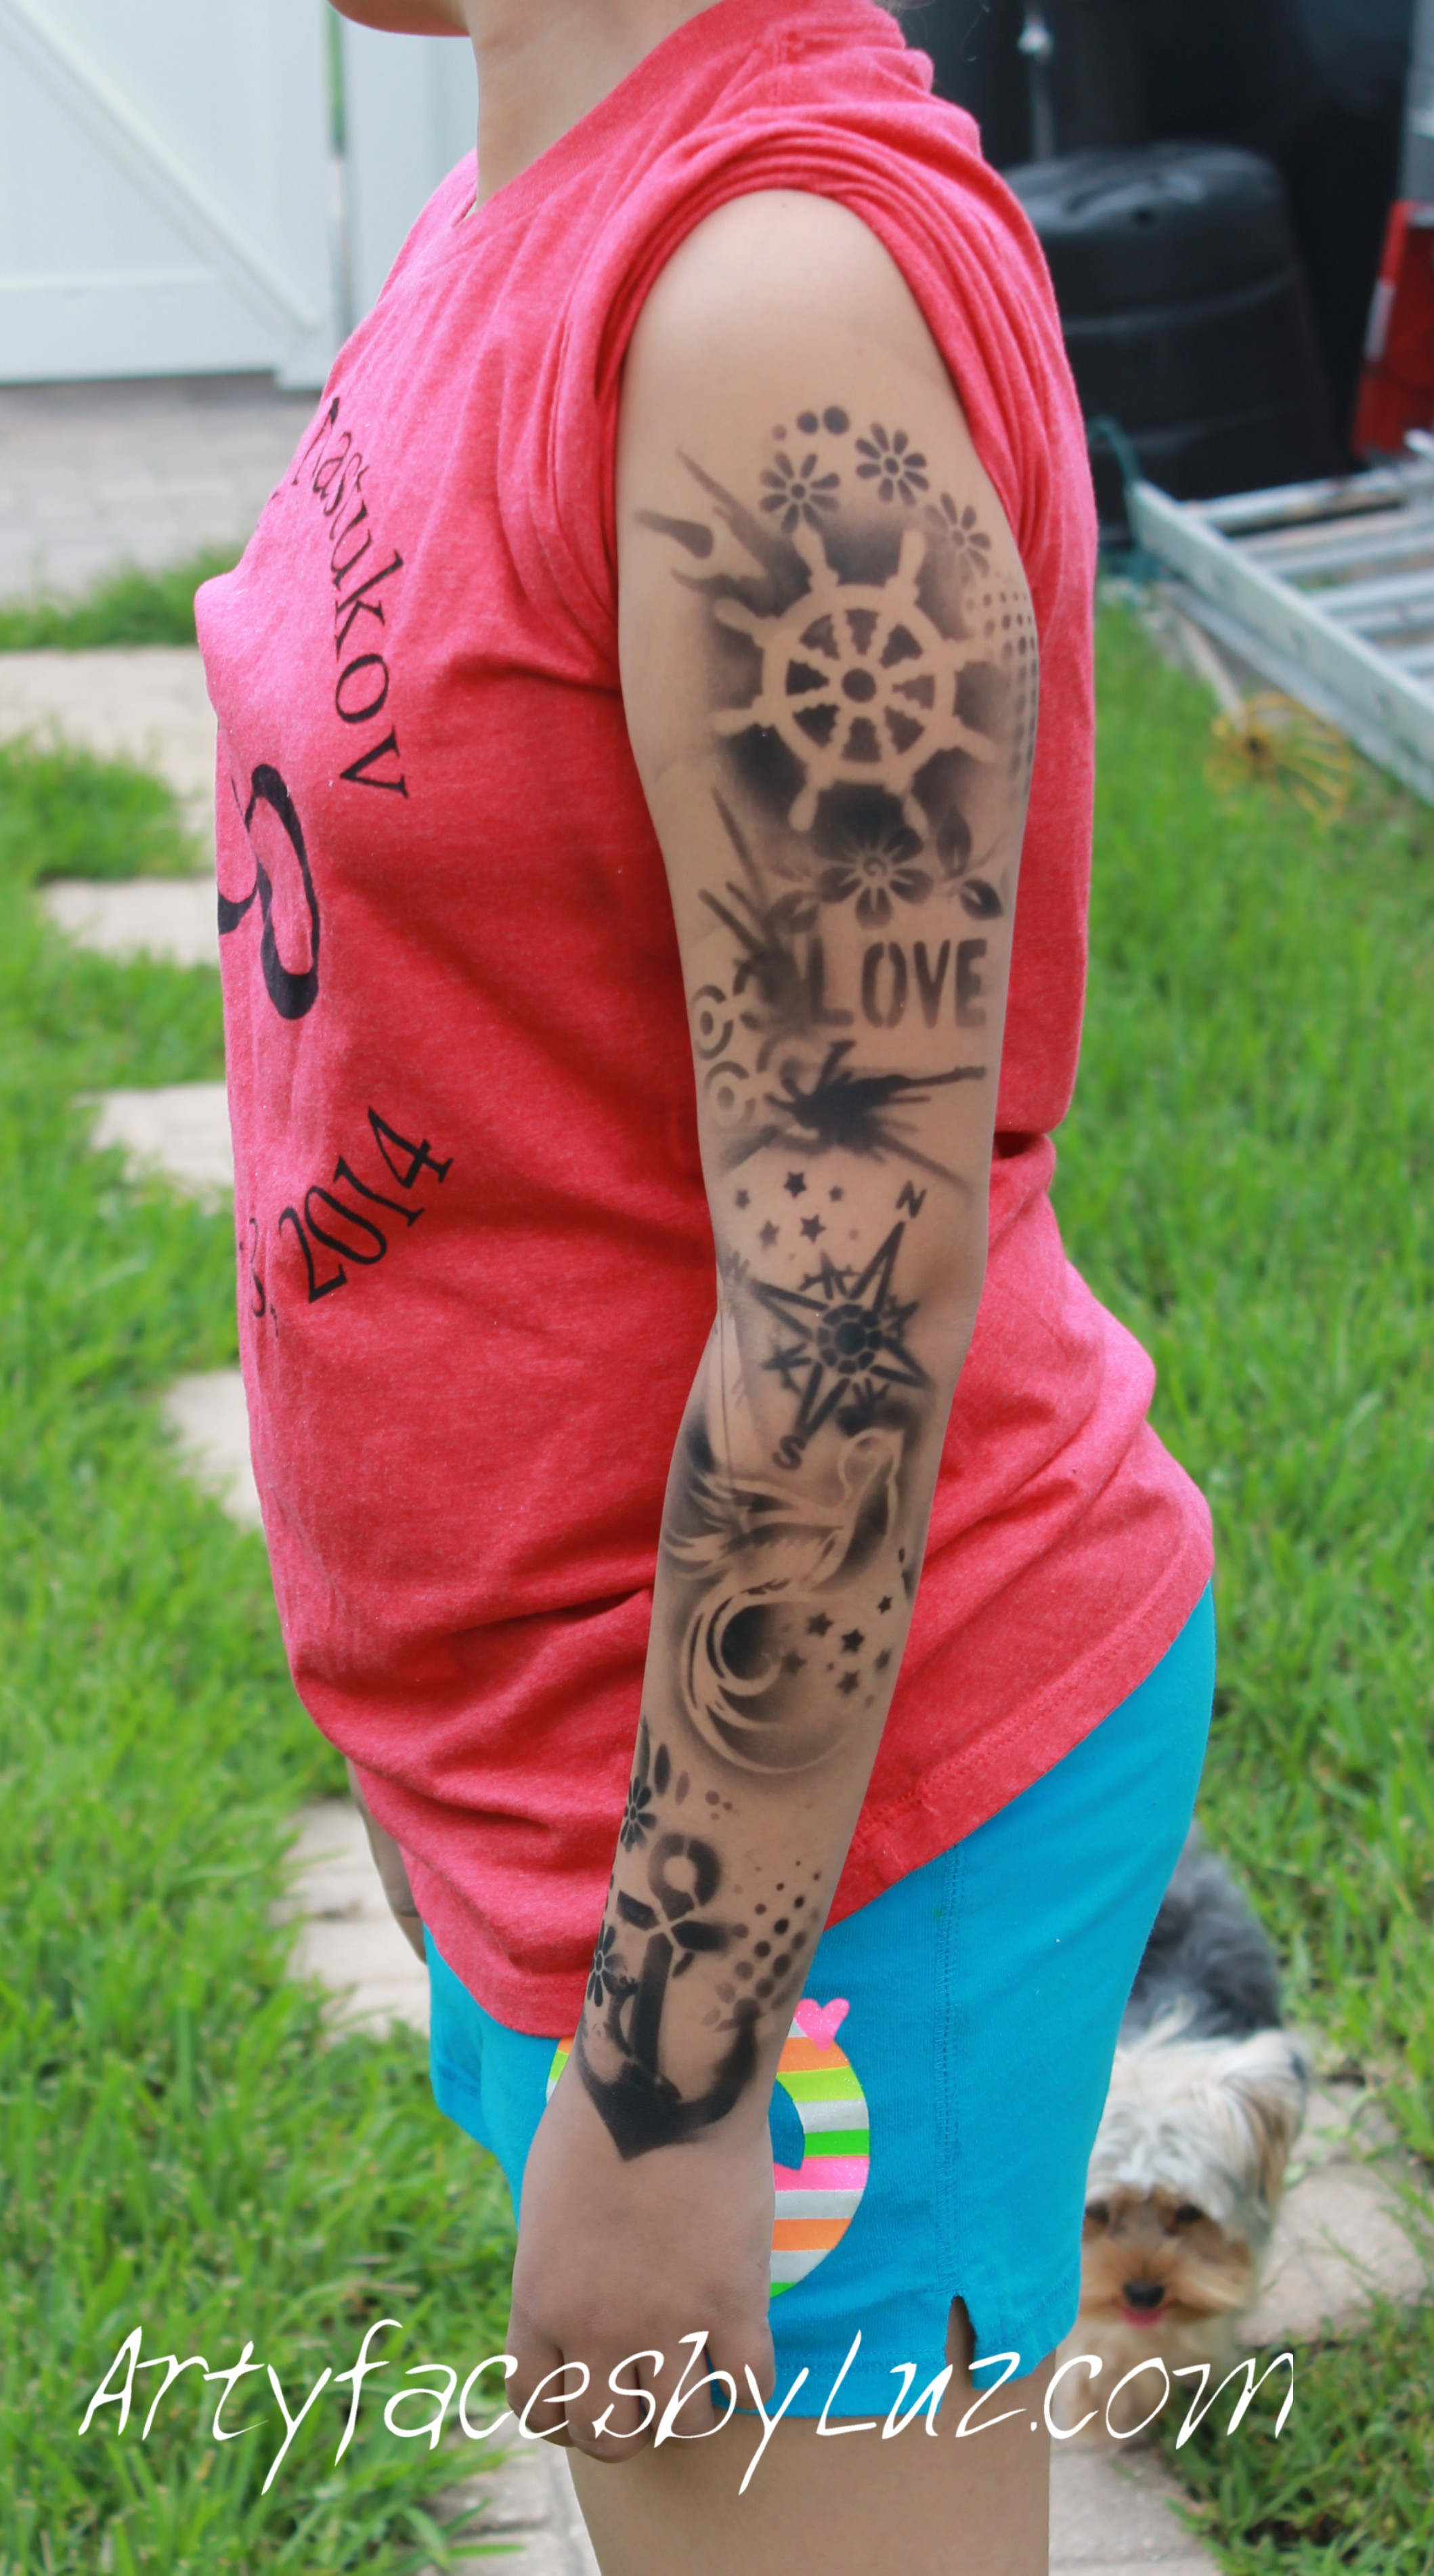 Tattoo Sleeve.jpg